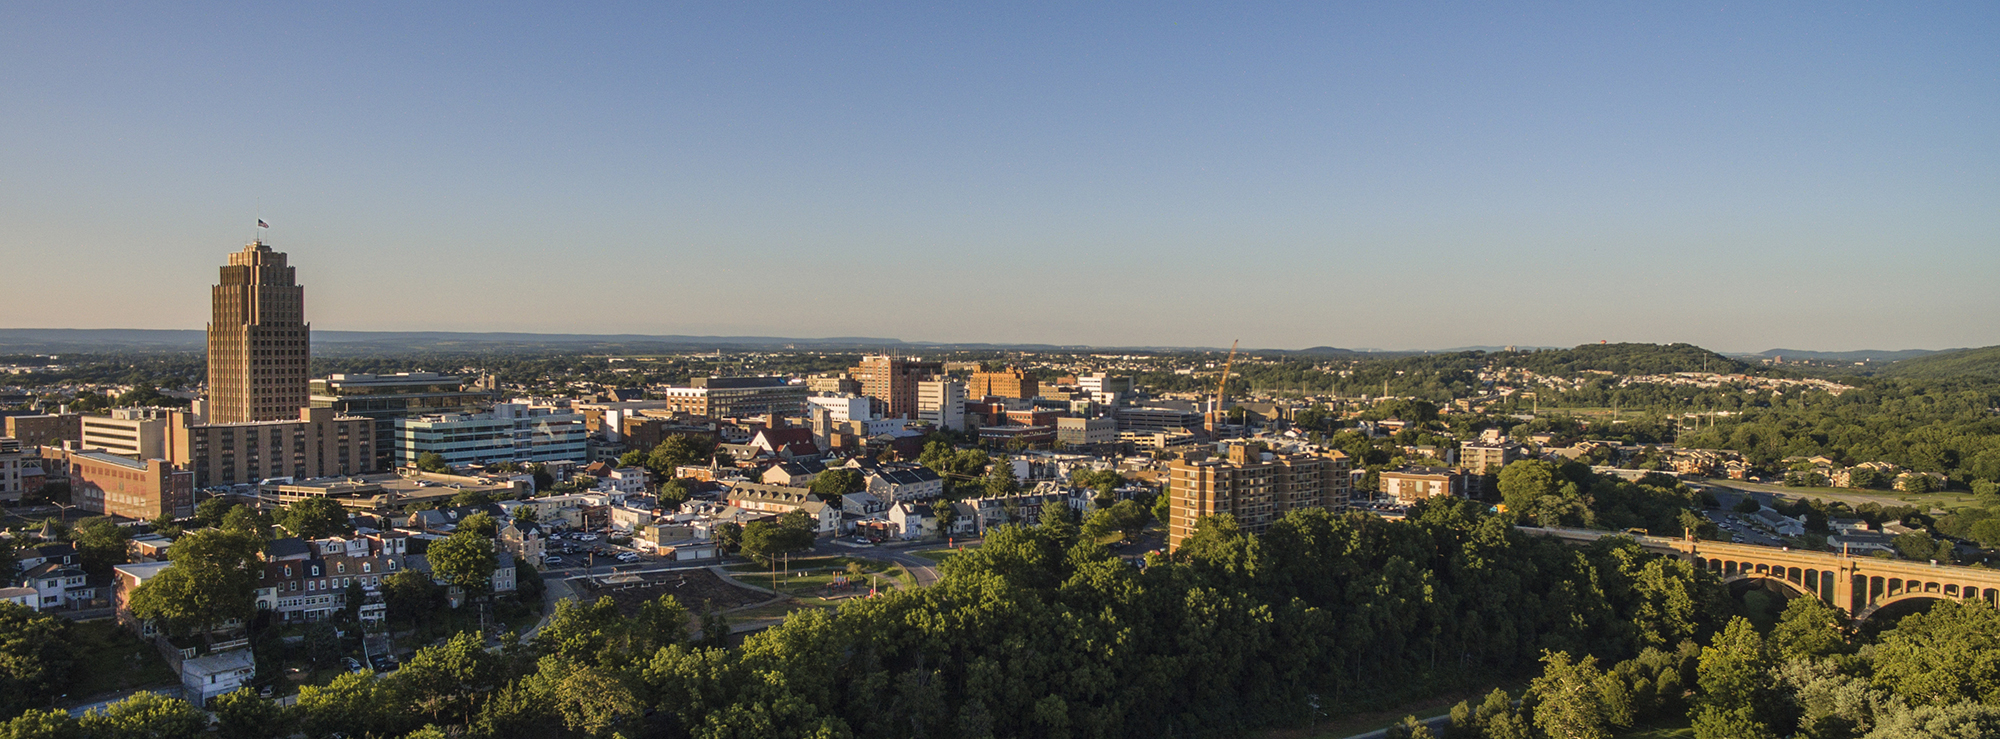 Aerial photo of Allentown